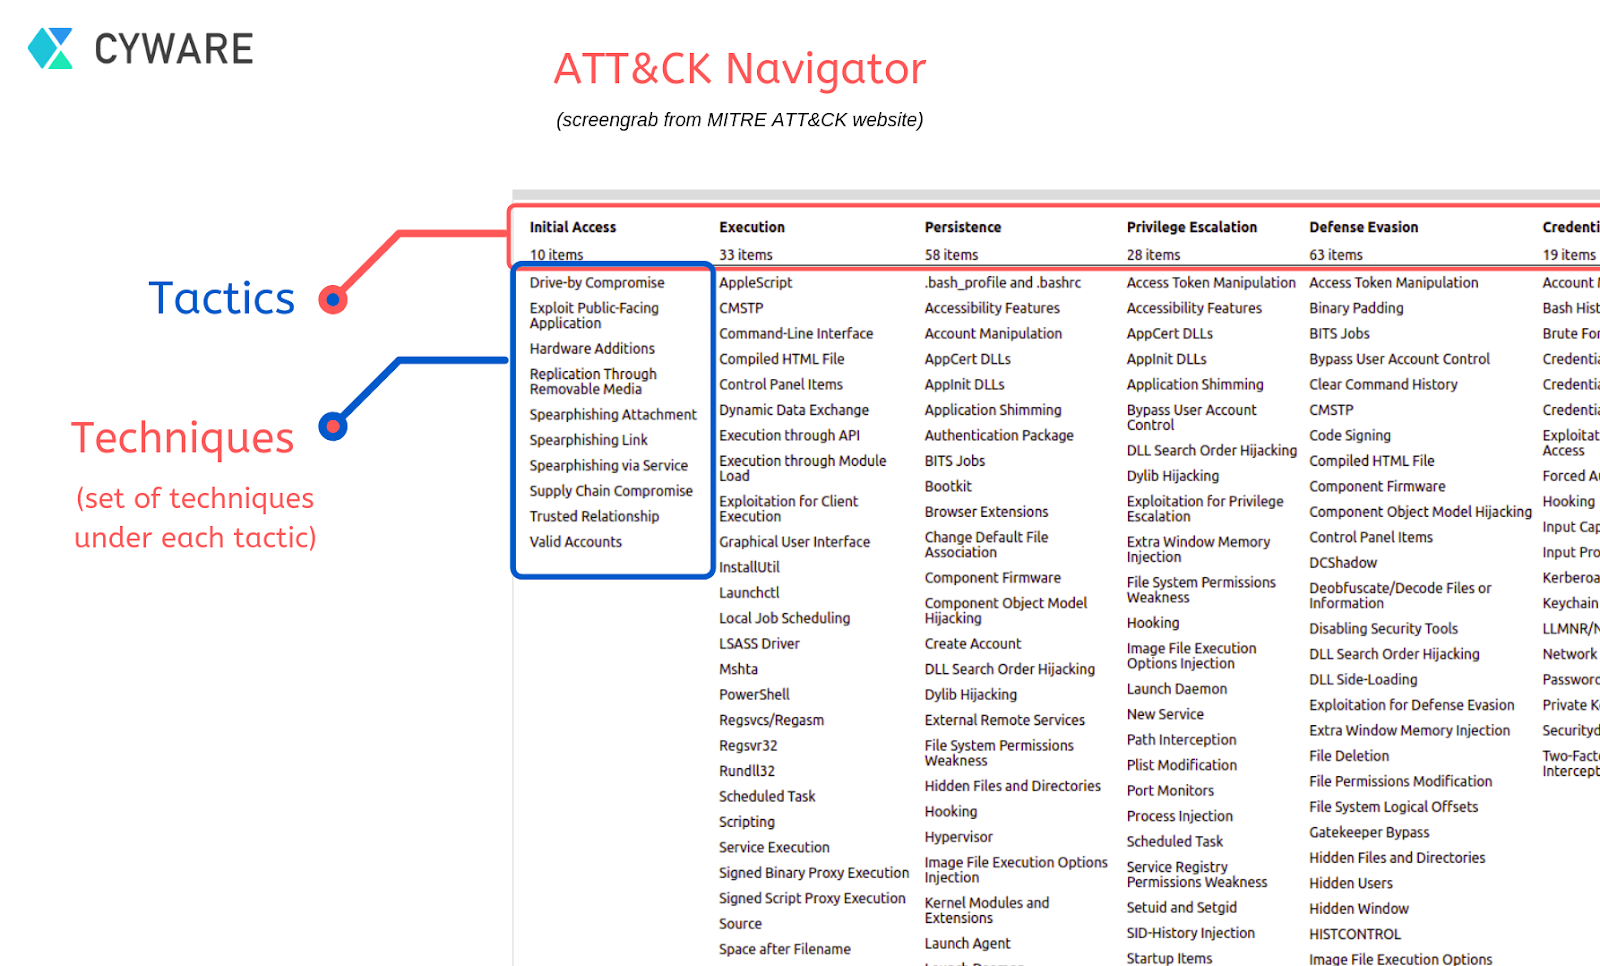 Deciphering the ATT&CK Navigator: Part 1 - What and why